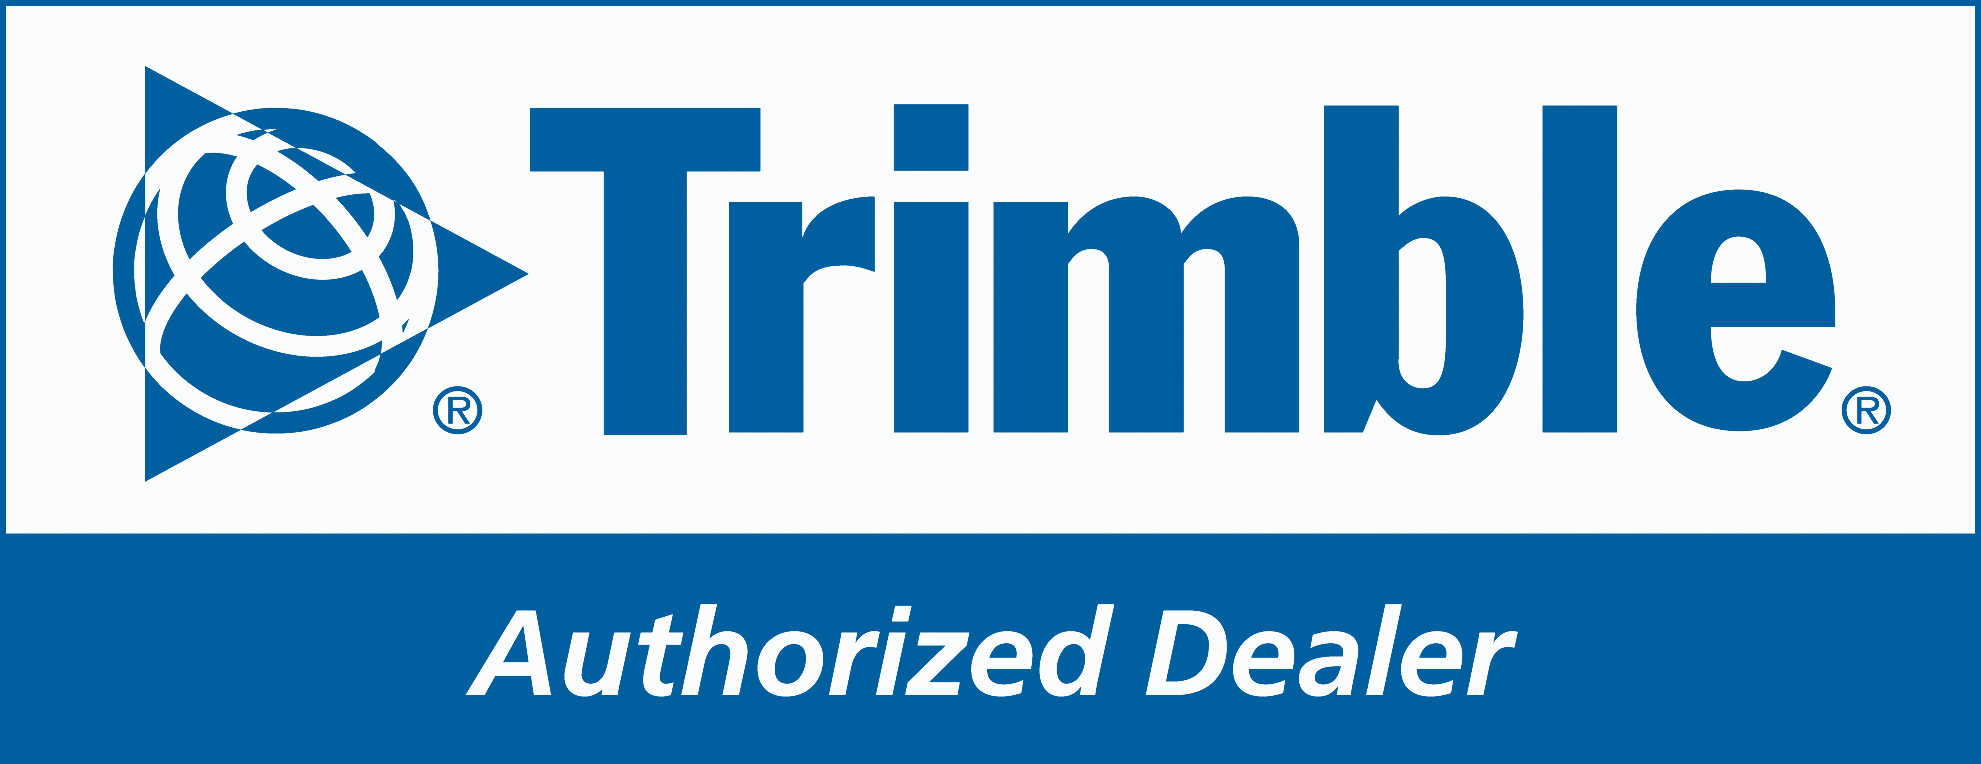 Trimble Authorized Dealer US English_blue_logo_RGB